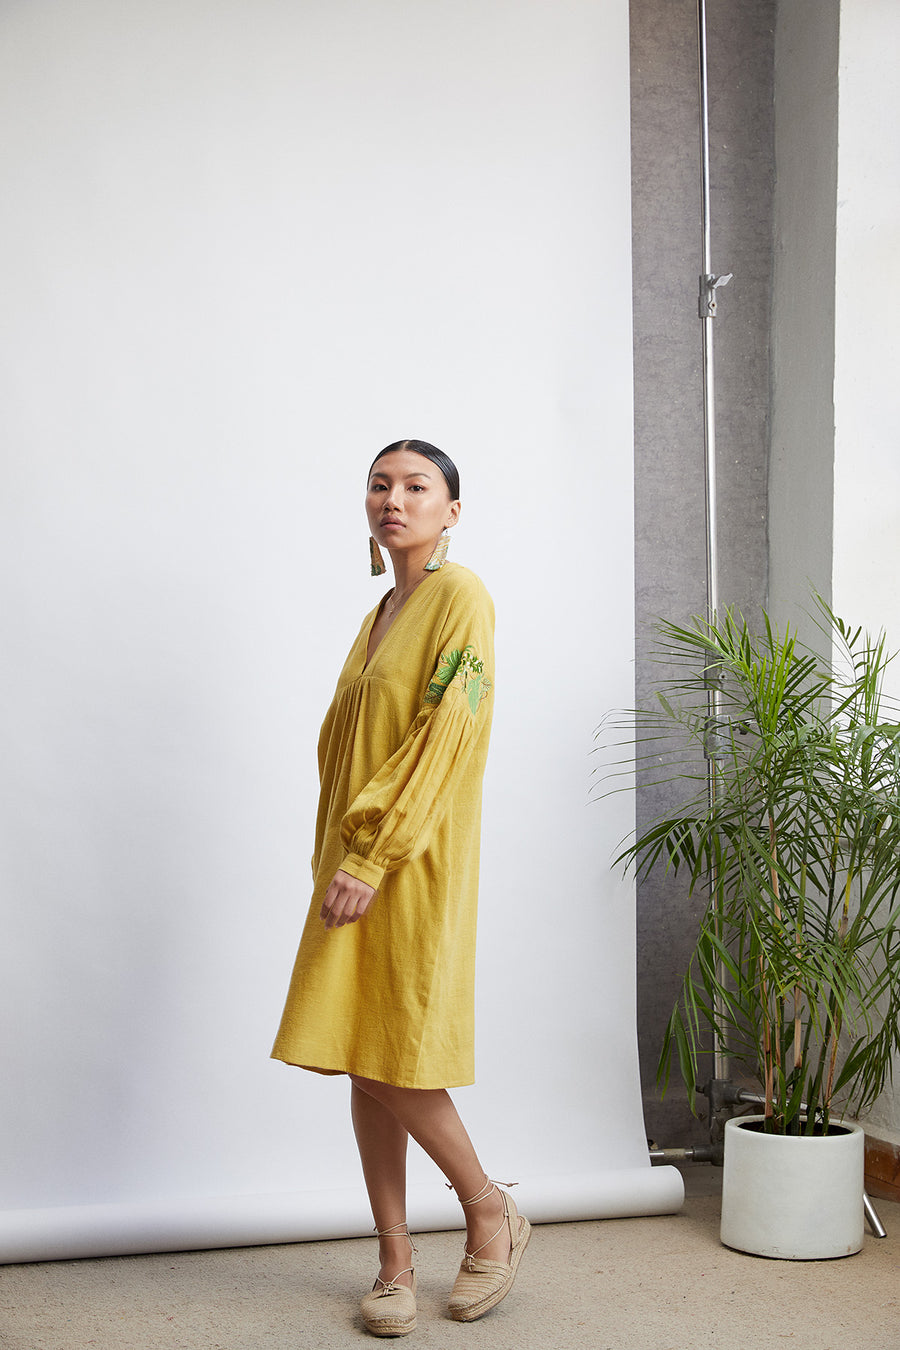 Sunshine Organic cotton v neck dress - Ethical made fashion - onlyethikal